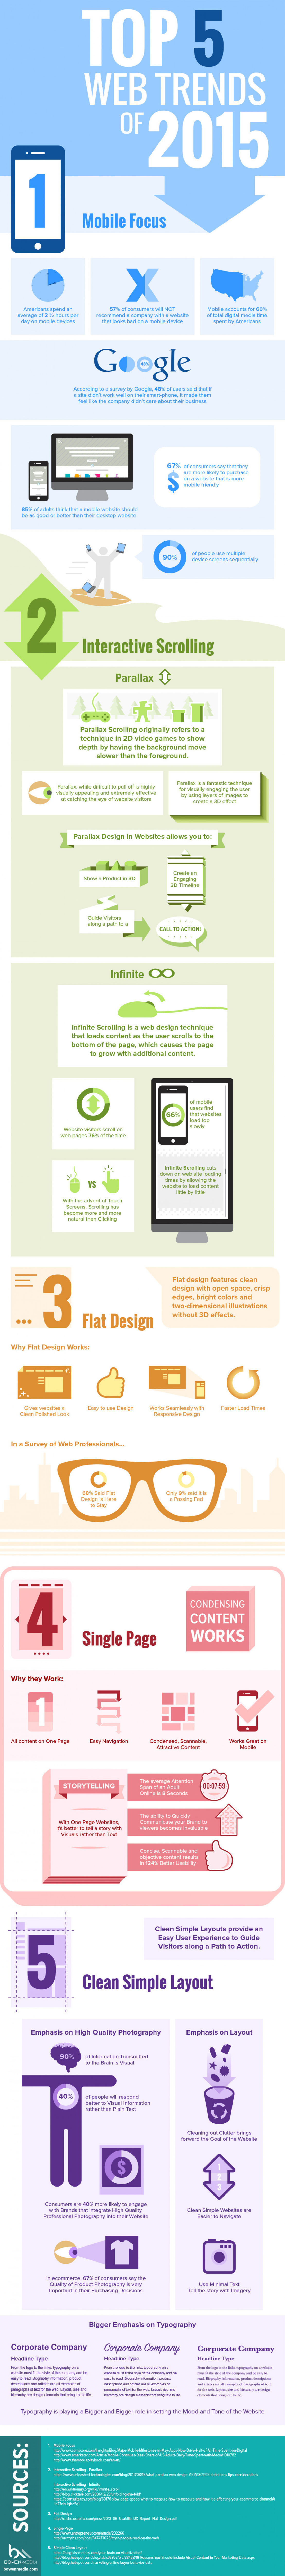 Top 5 Web Design Trends For 2015 Infographic